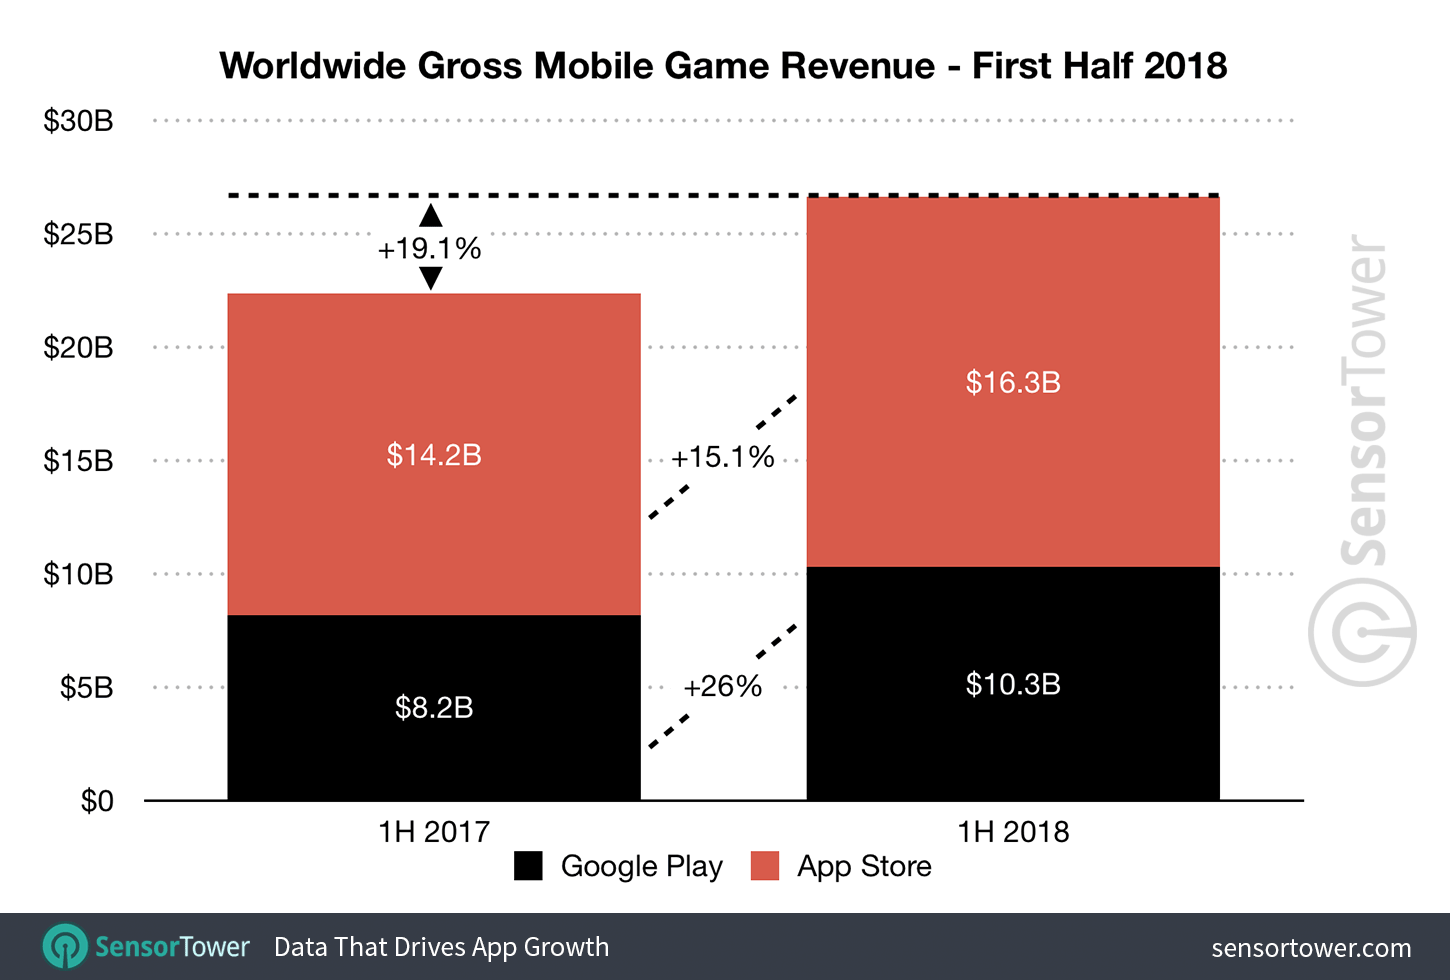 1H 2018 Mobile Game Revenue